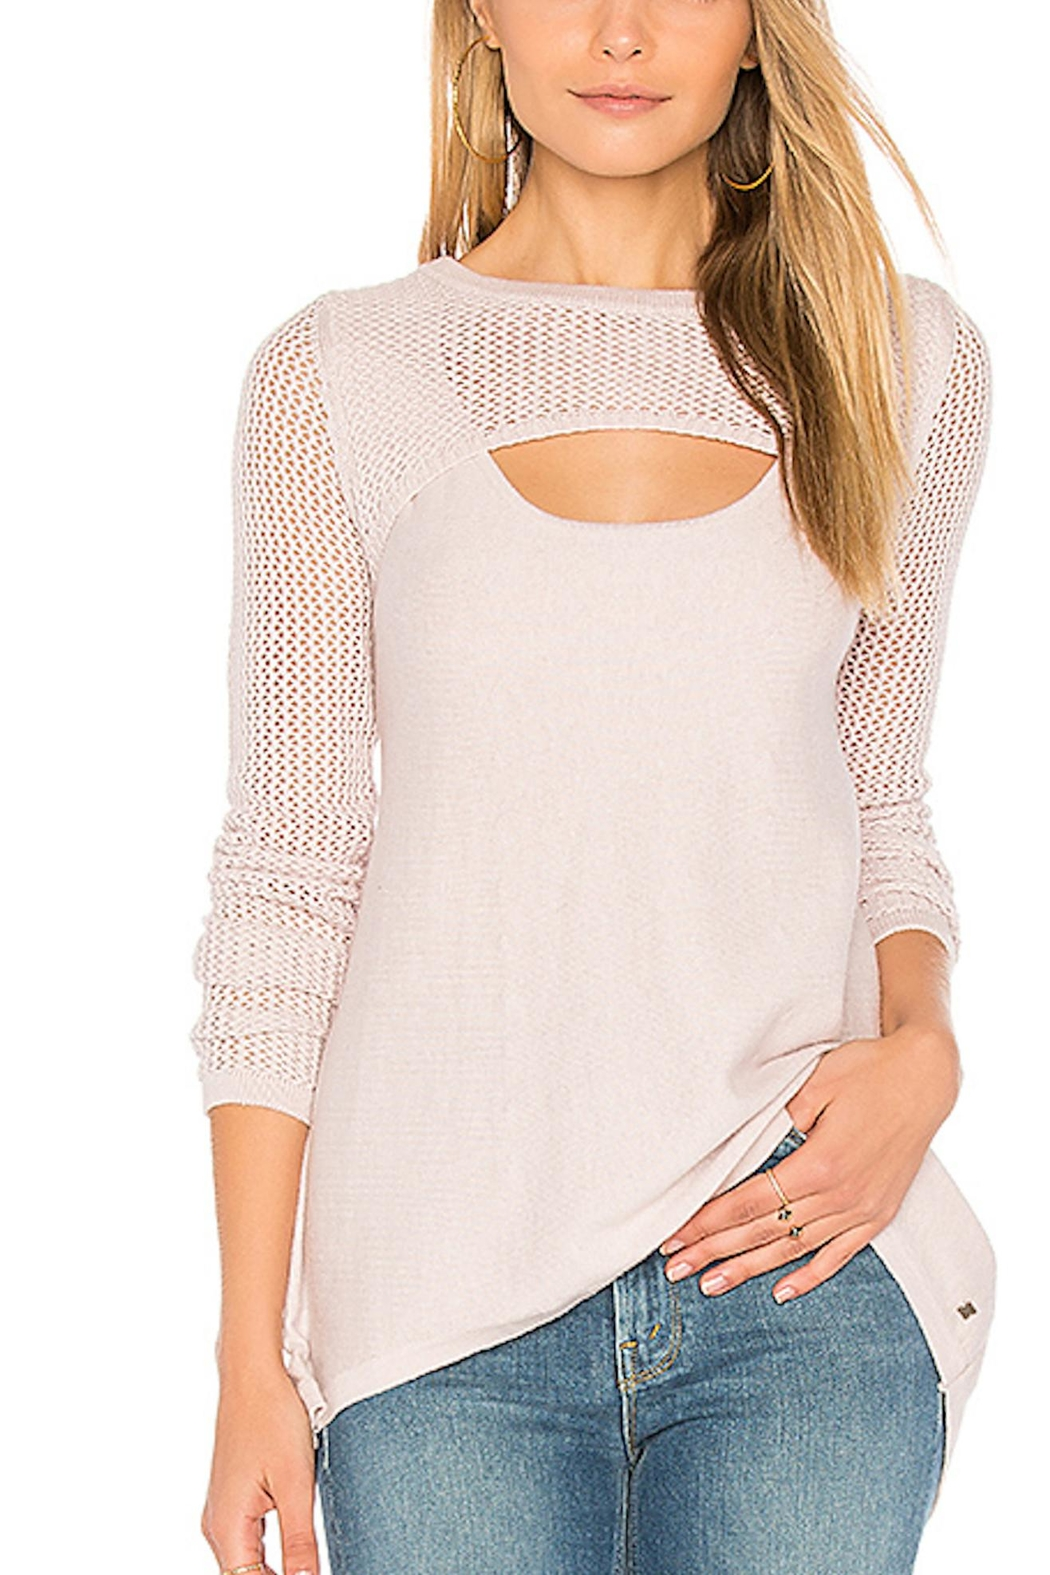 One Grey Day Pink Crochet Sweater - Main Image